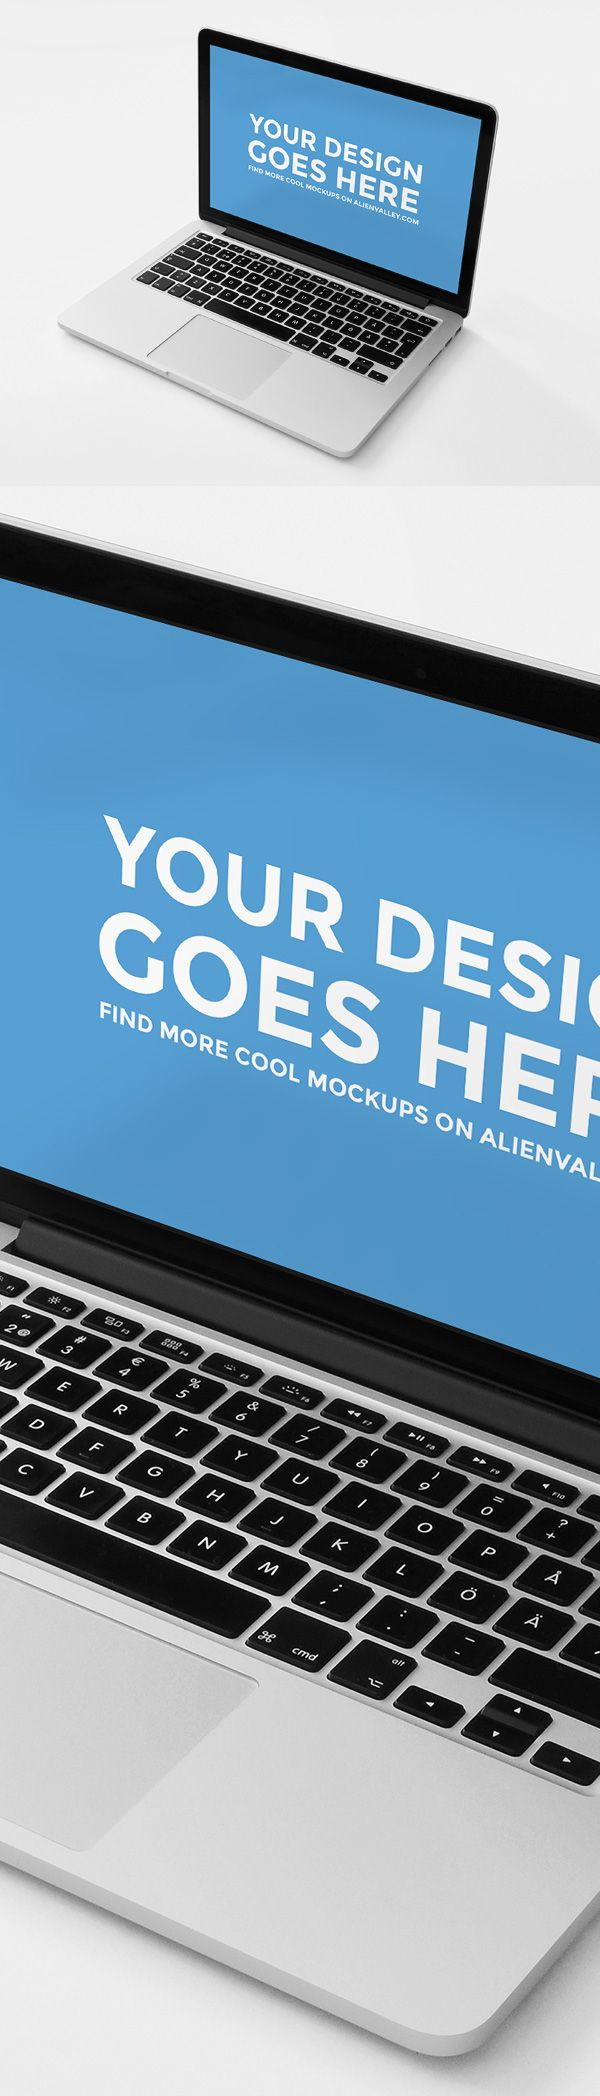 Free Macbook Pro Mockup | alienvalley.com | #free #photoshop #mockup